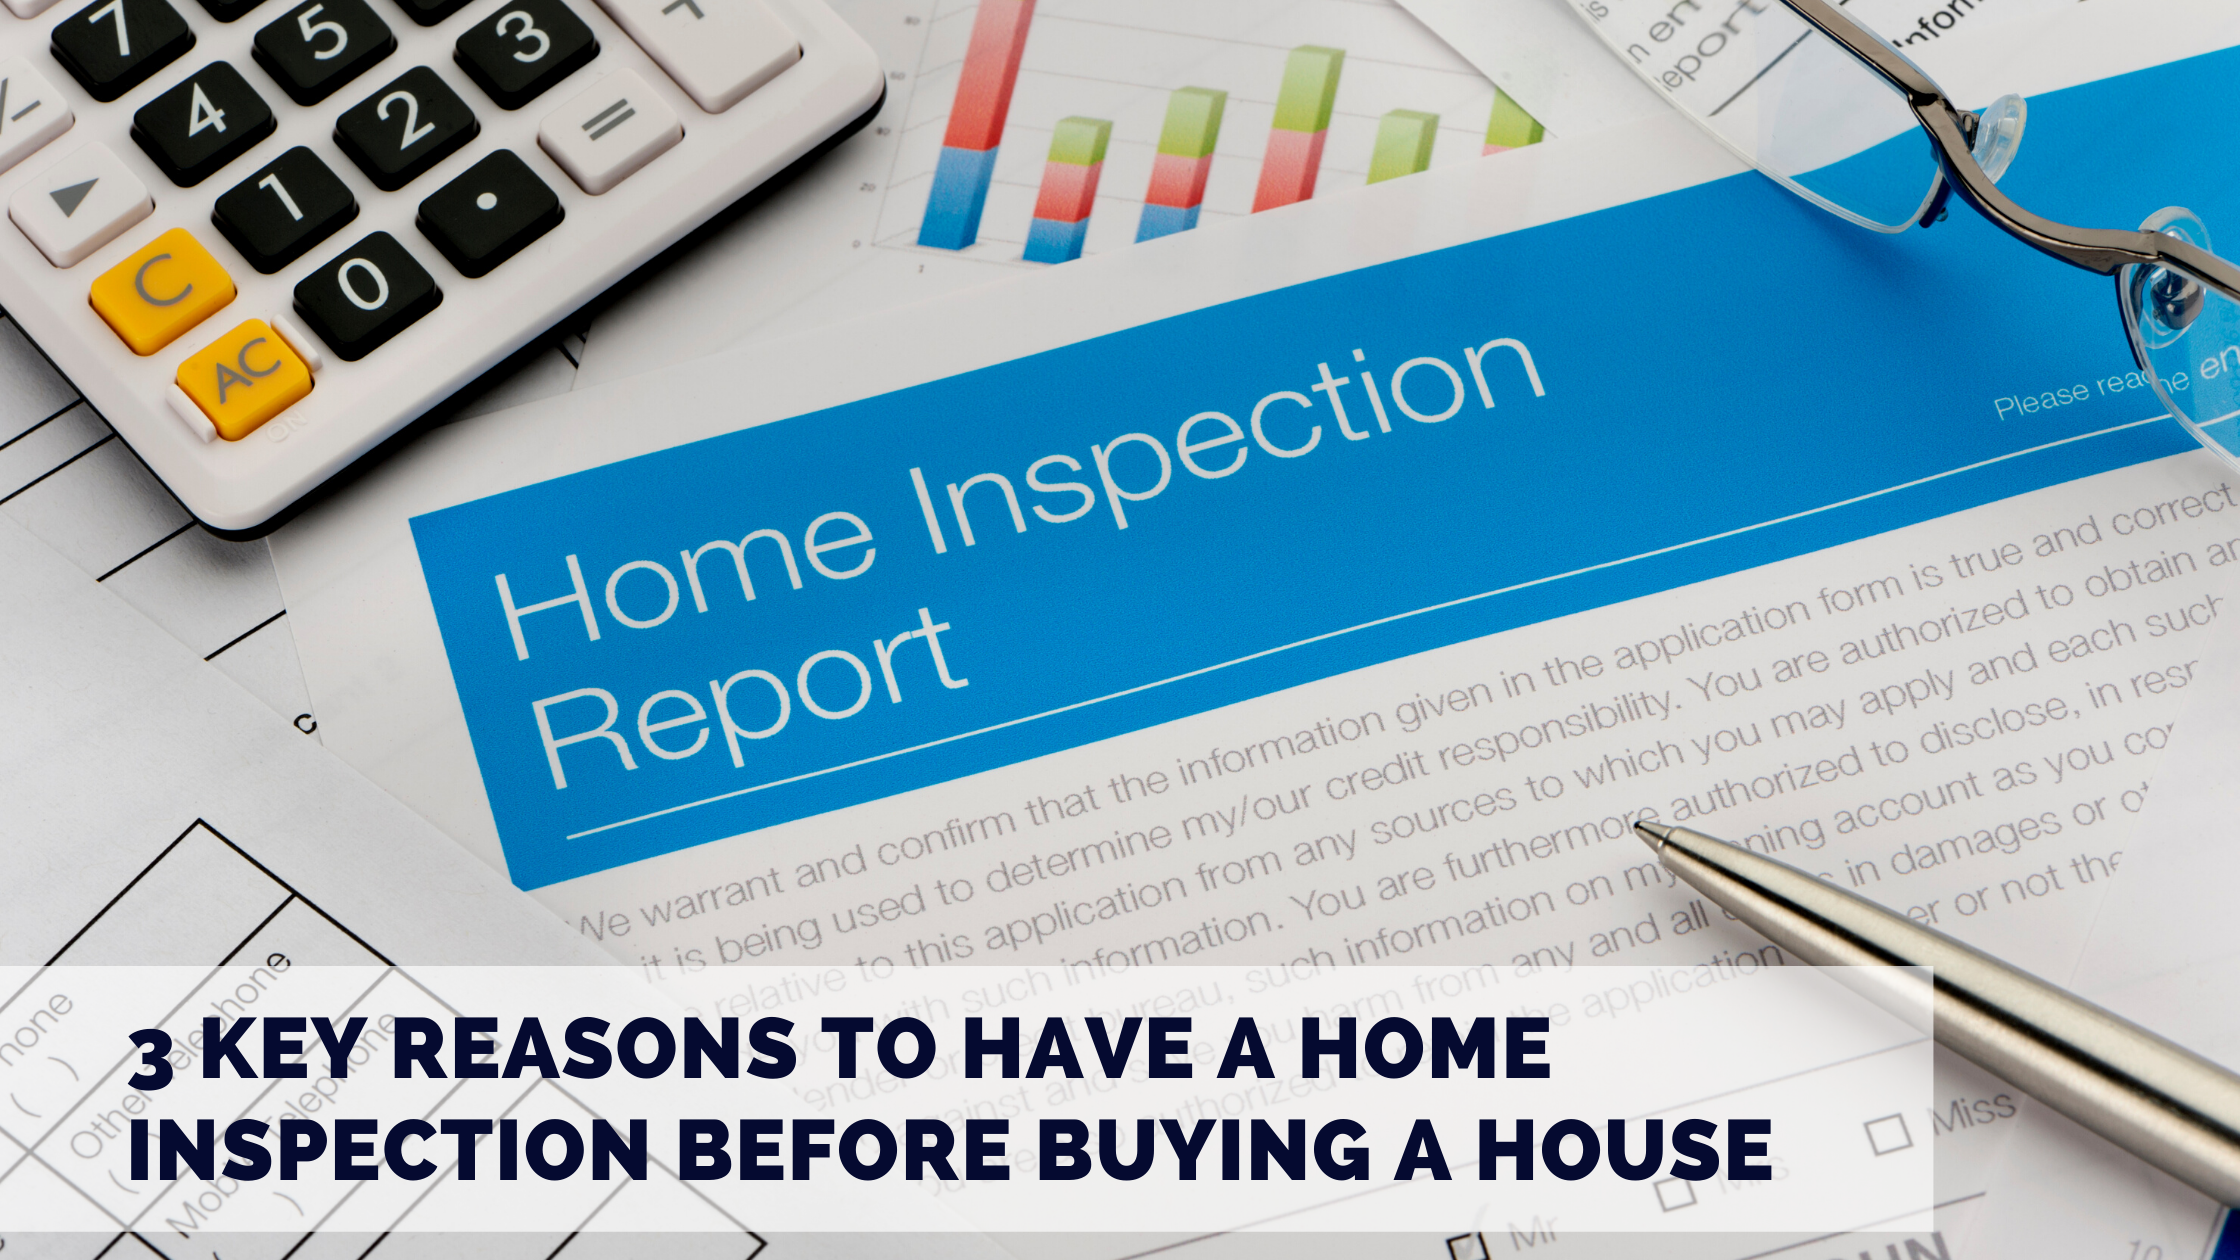 3 Key Reasons to Have a Home Inspection Before Buying a House